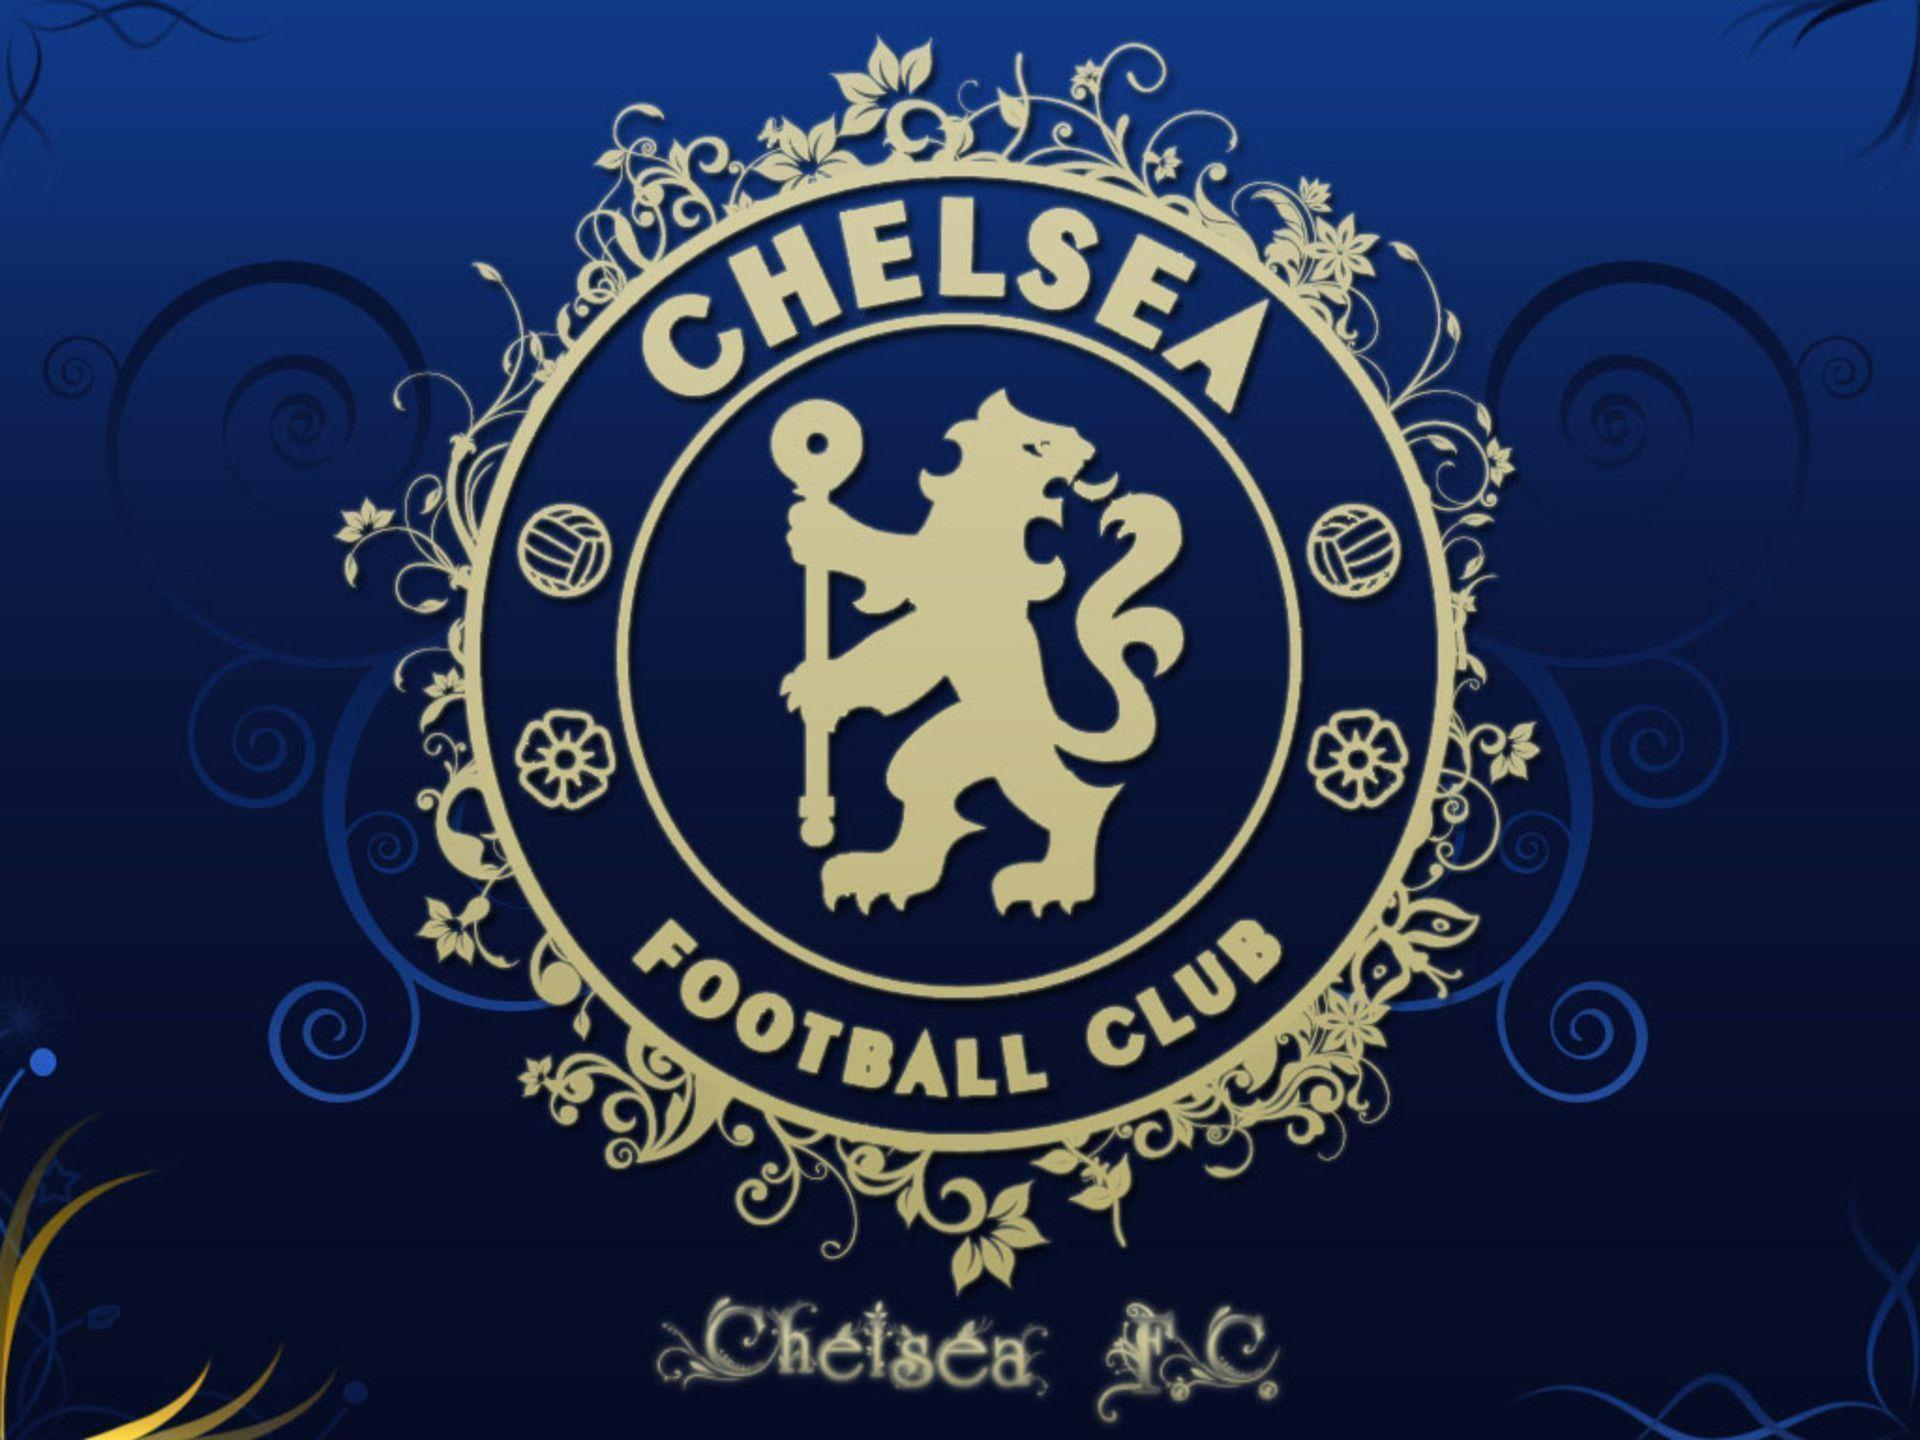 Chelsea Fc Wallpapers HD 2015